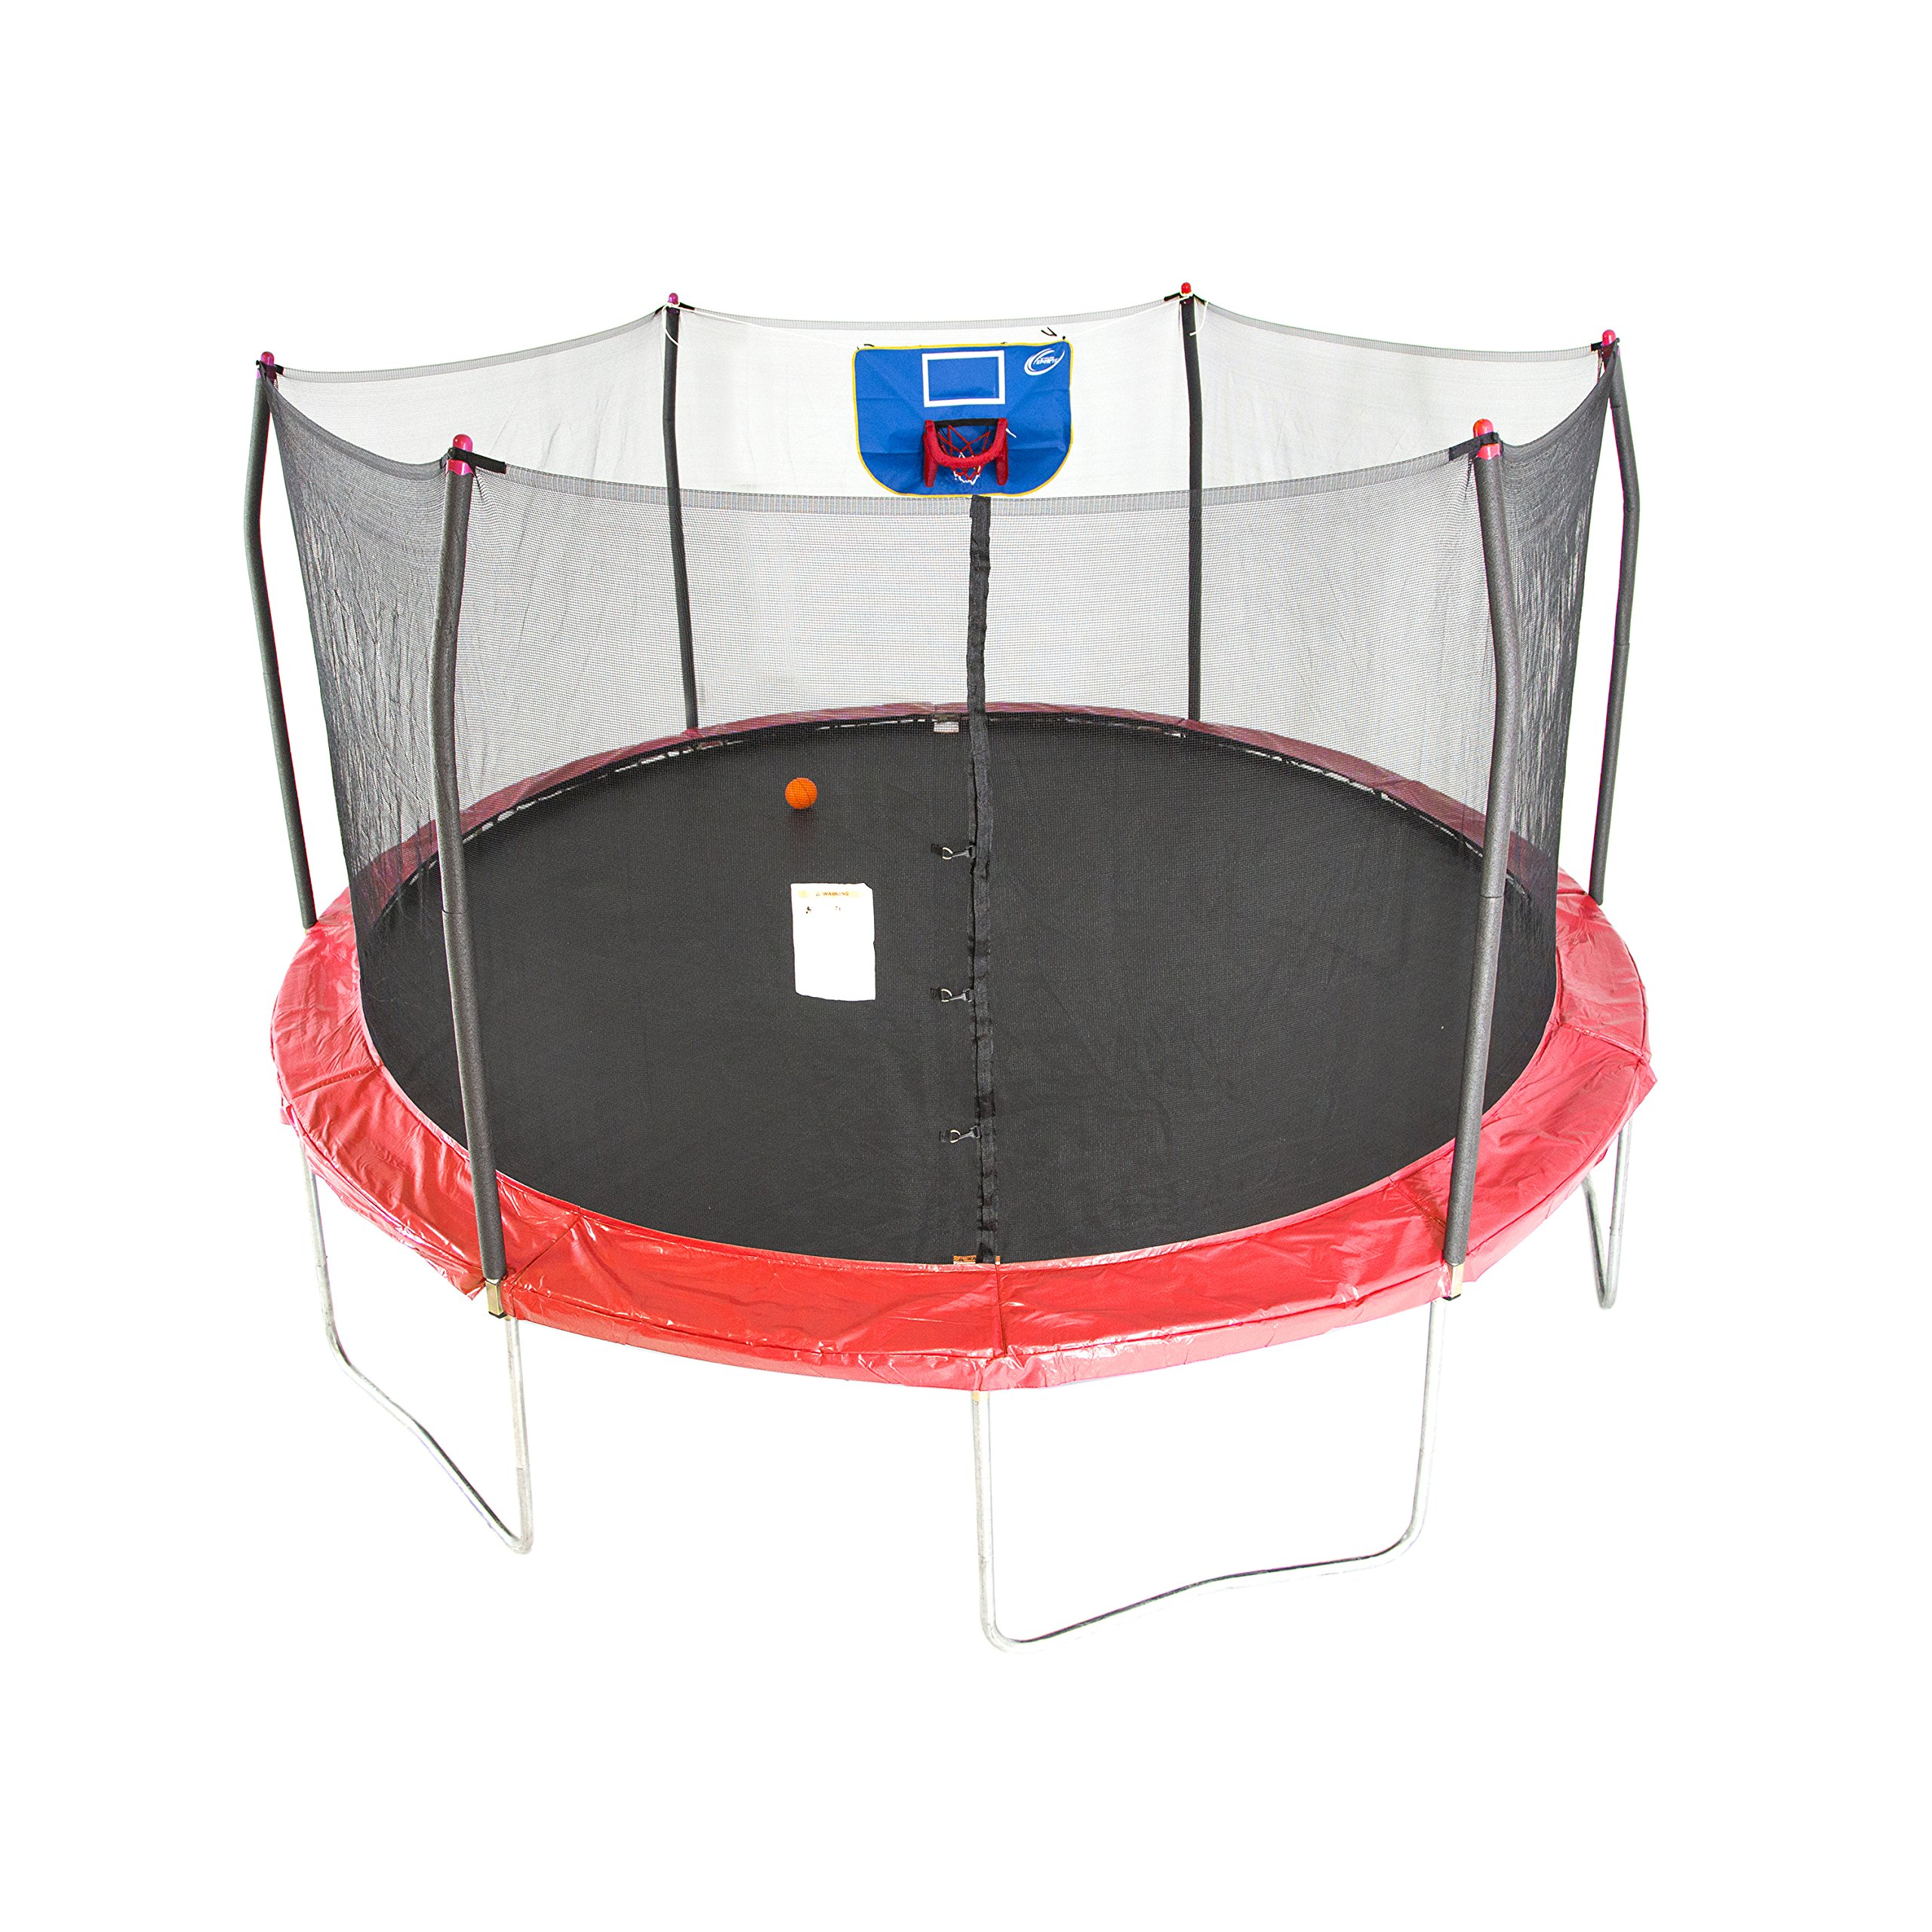 Skywalker Trampolines 15-Foot Jump N' Dunk Trampoline with Enclosure Net - Basketball Trampoline by Skywalker Trampolines